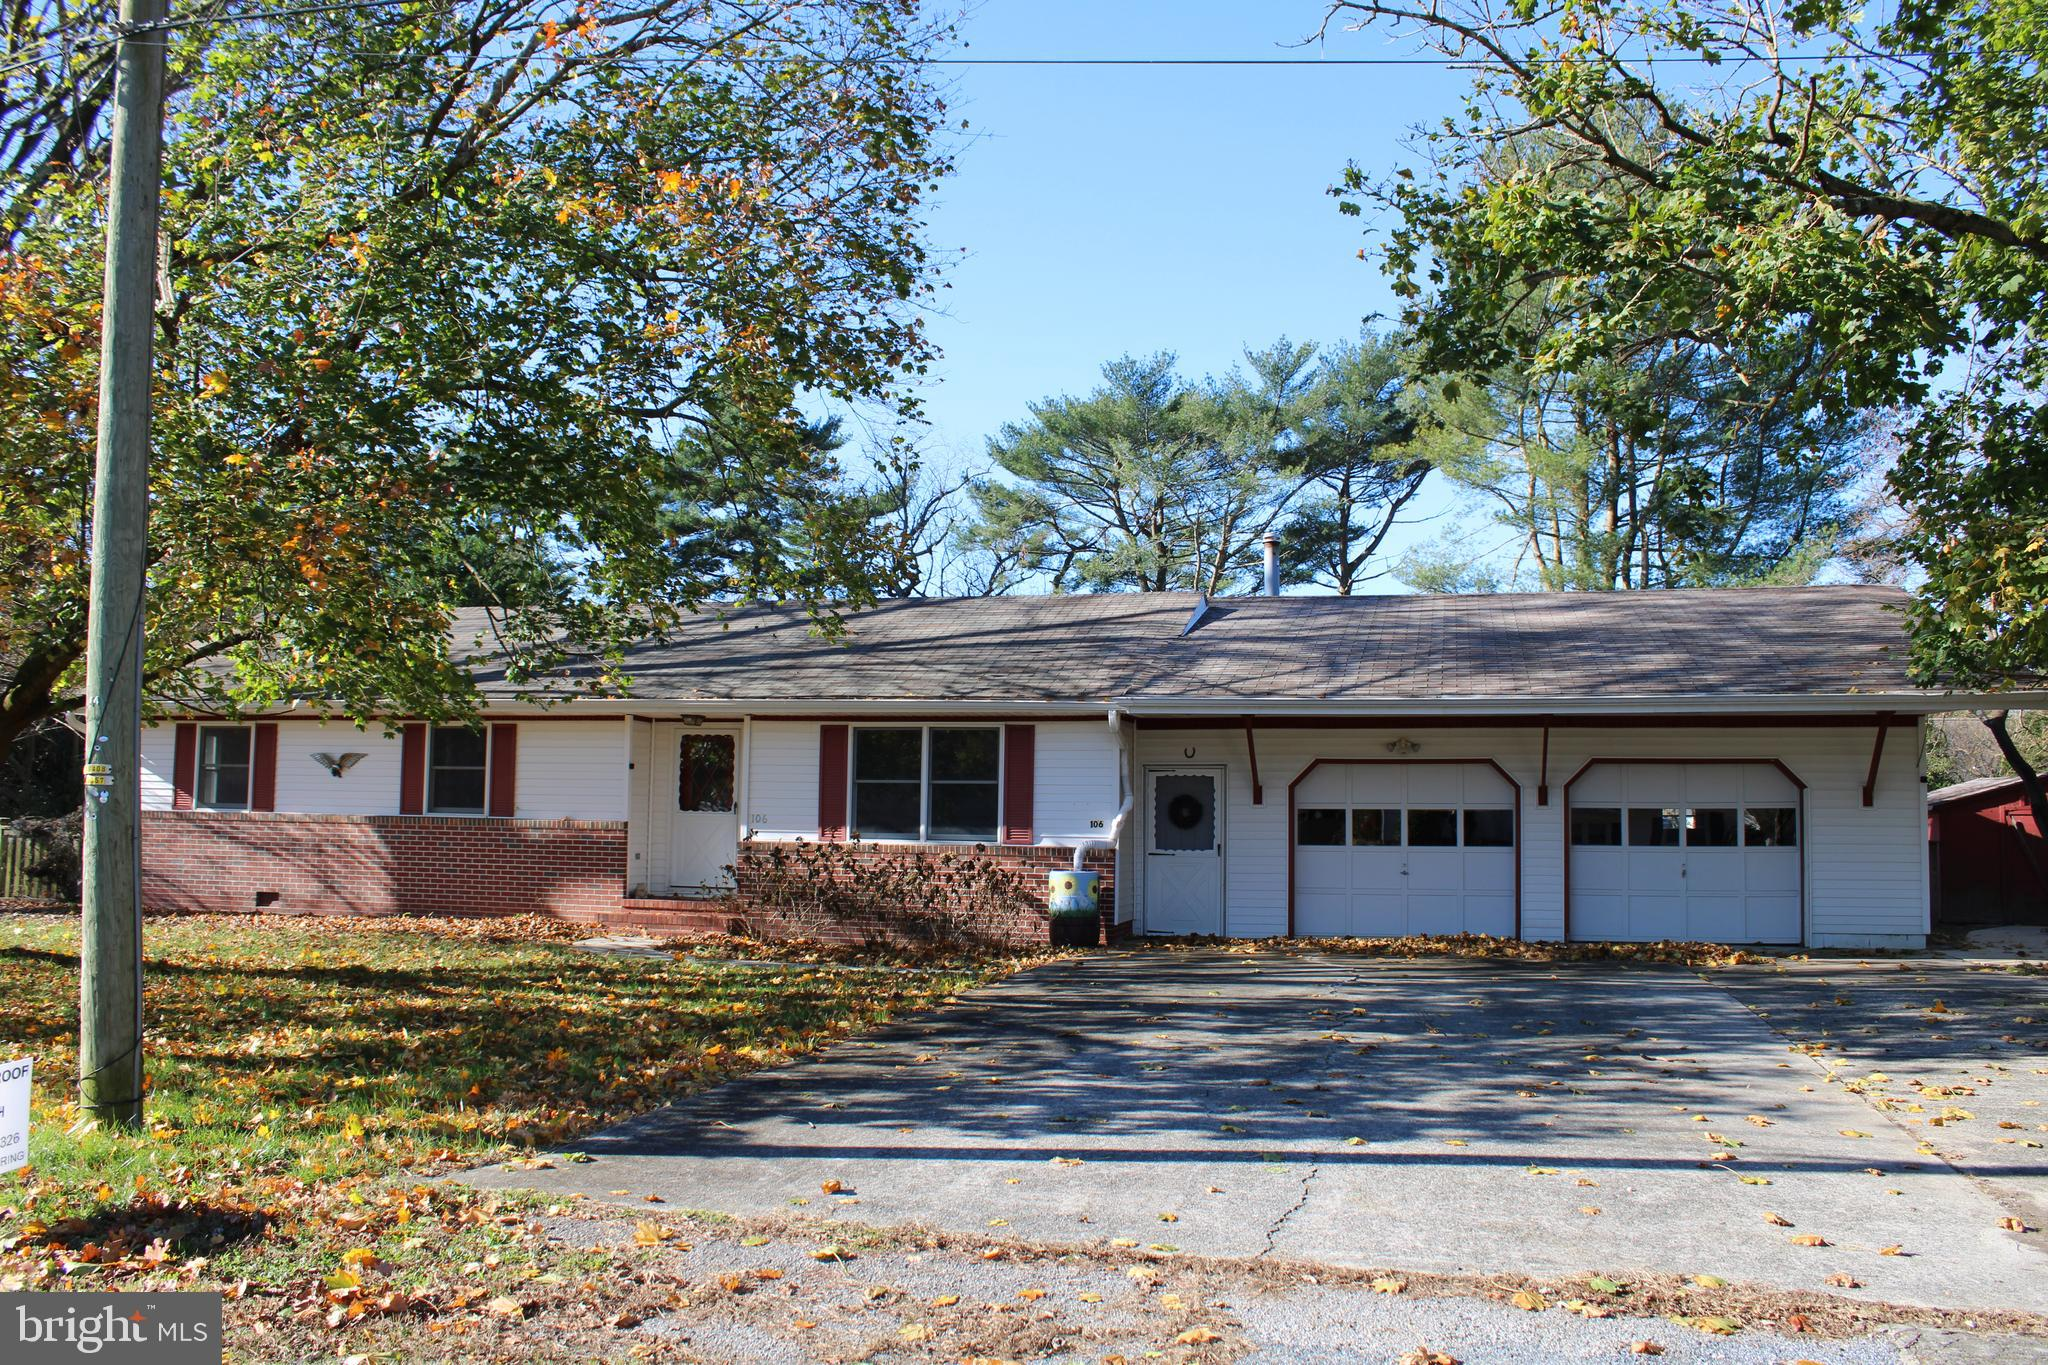 3 bedroom, 2 bath home. 2 car attached garage. Septic pre-inspected. Hardwood floors. Clean and move